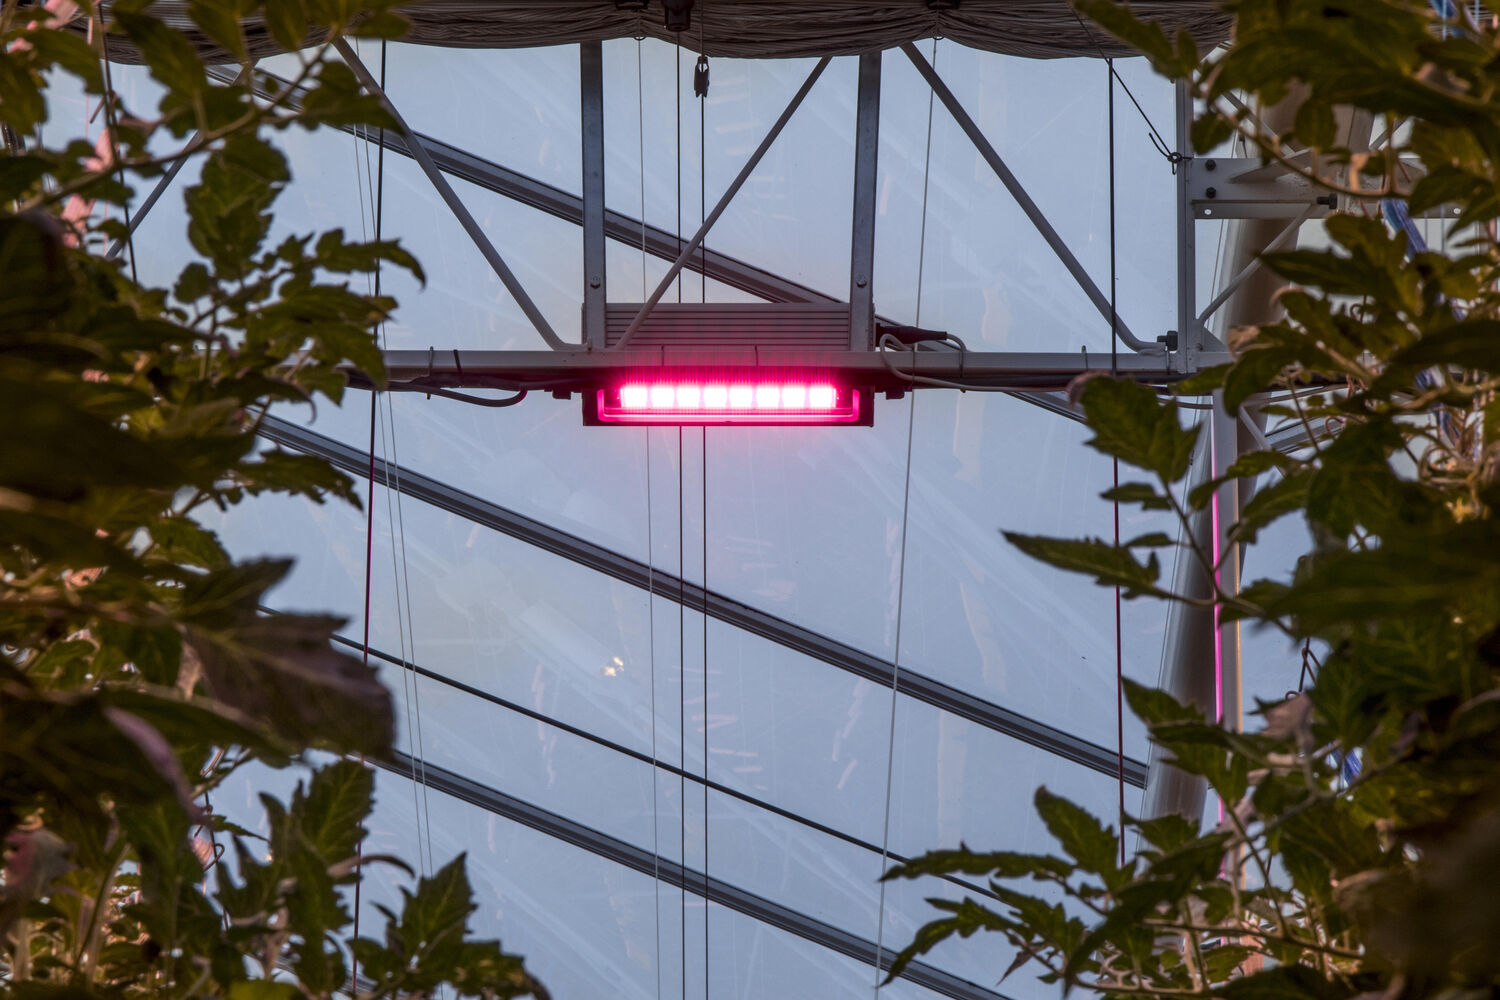 In Greenhouses: Hybrid lighting guarantees high-quality tomatoes all year round